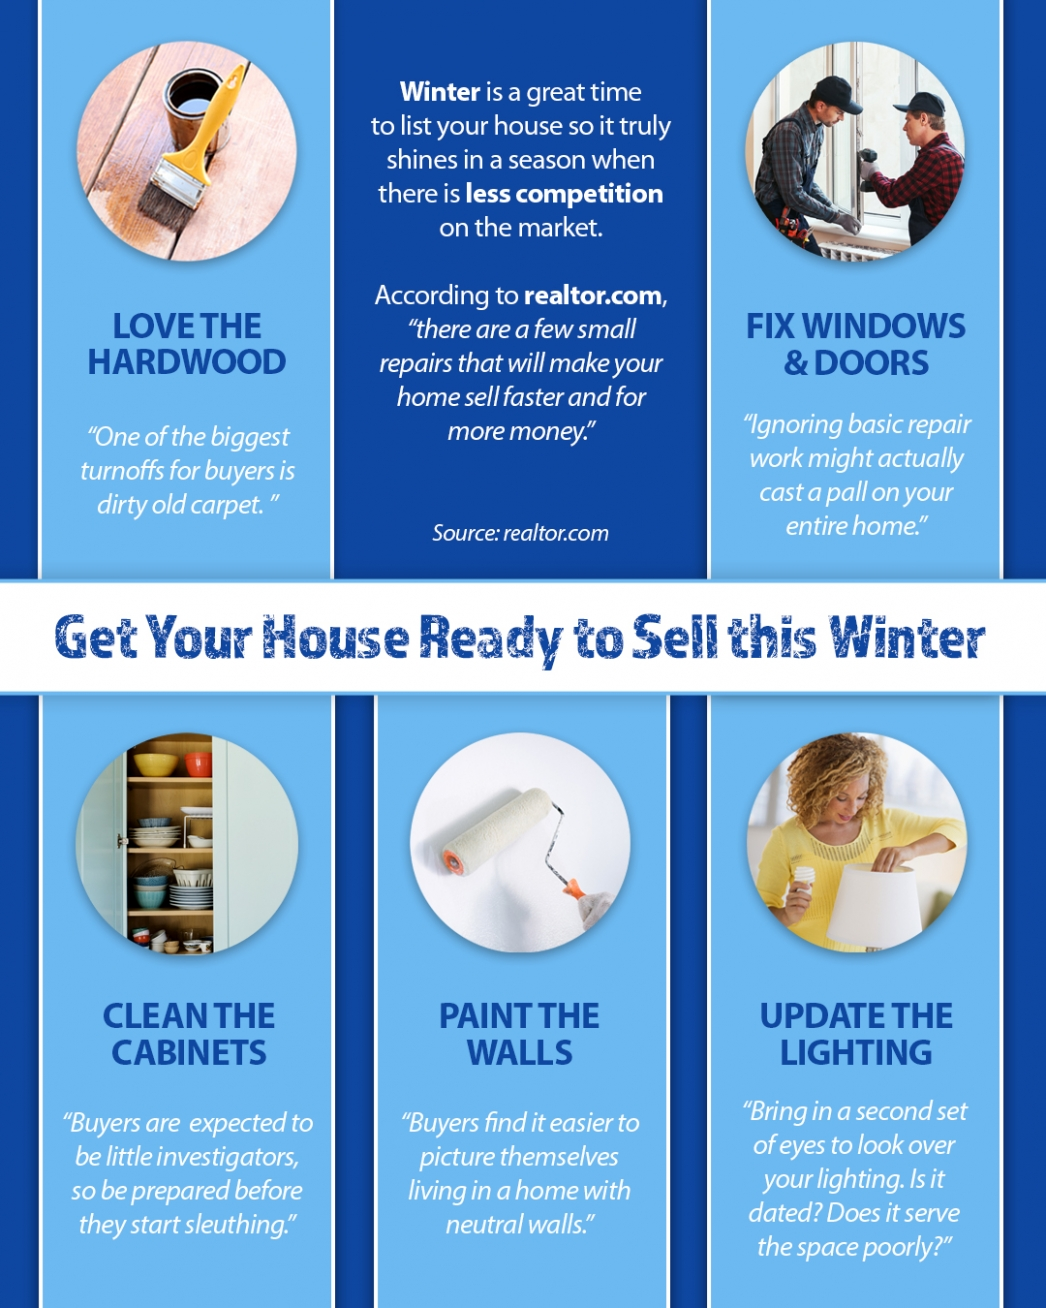 Get your house ready to sell - Homes for sale